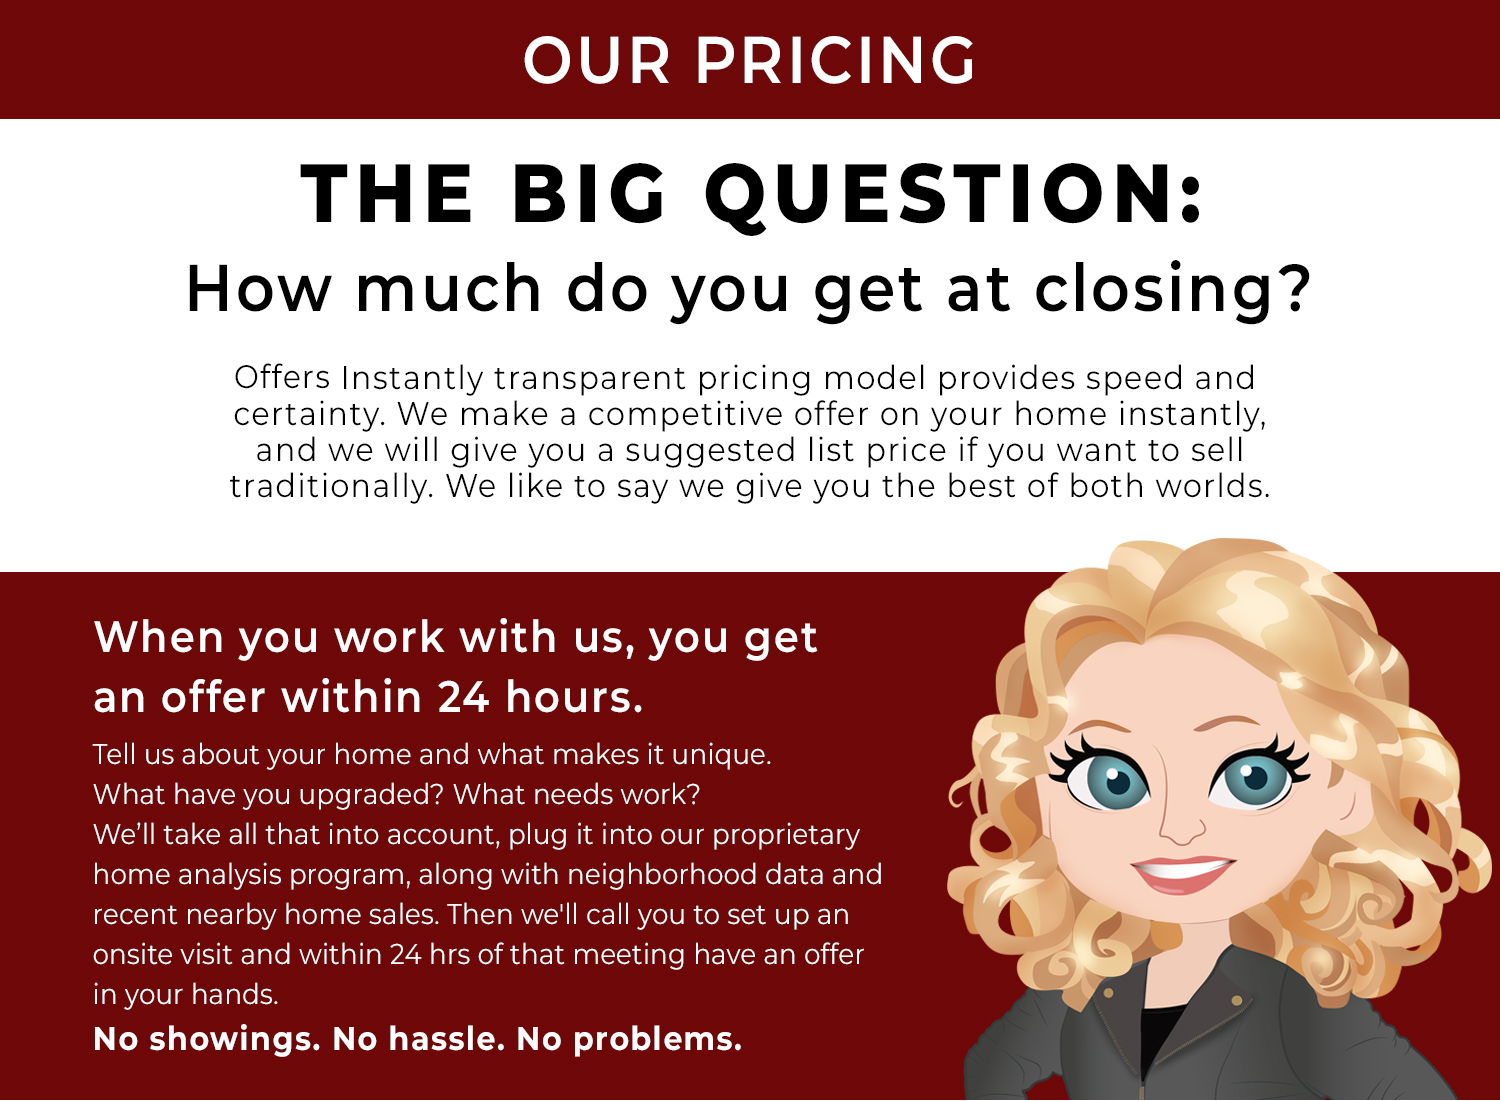 Using our transparent pricing model we will provide a fair offer for you home within 24 hours